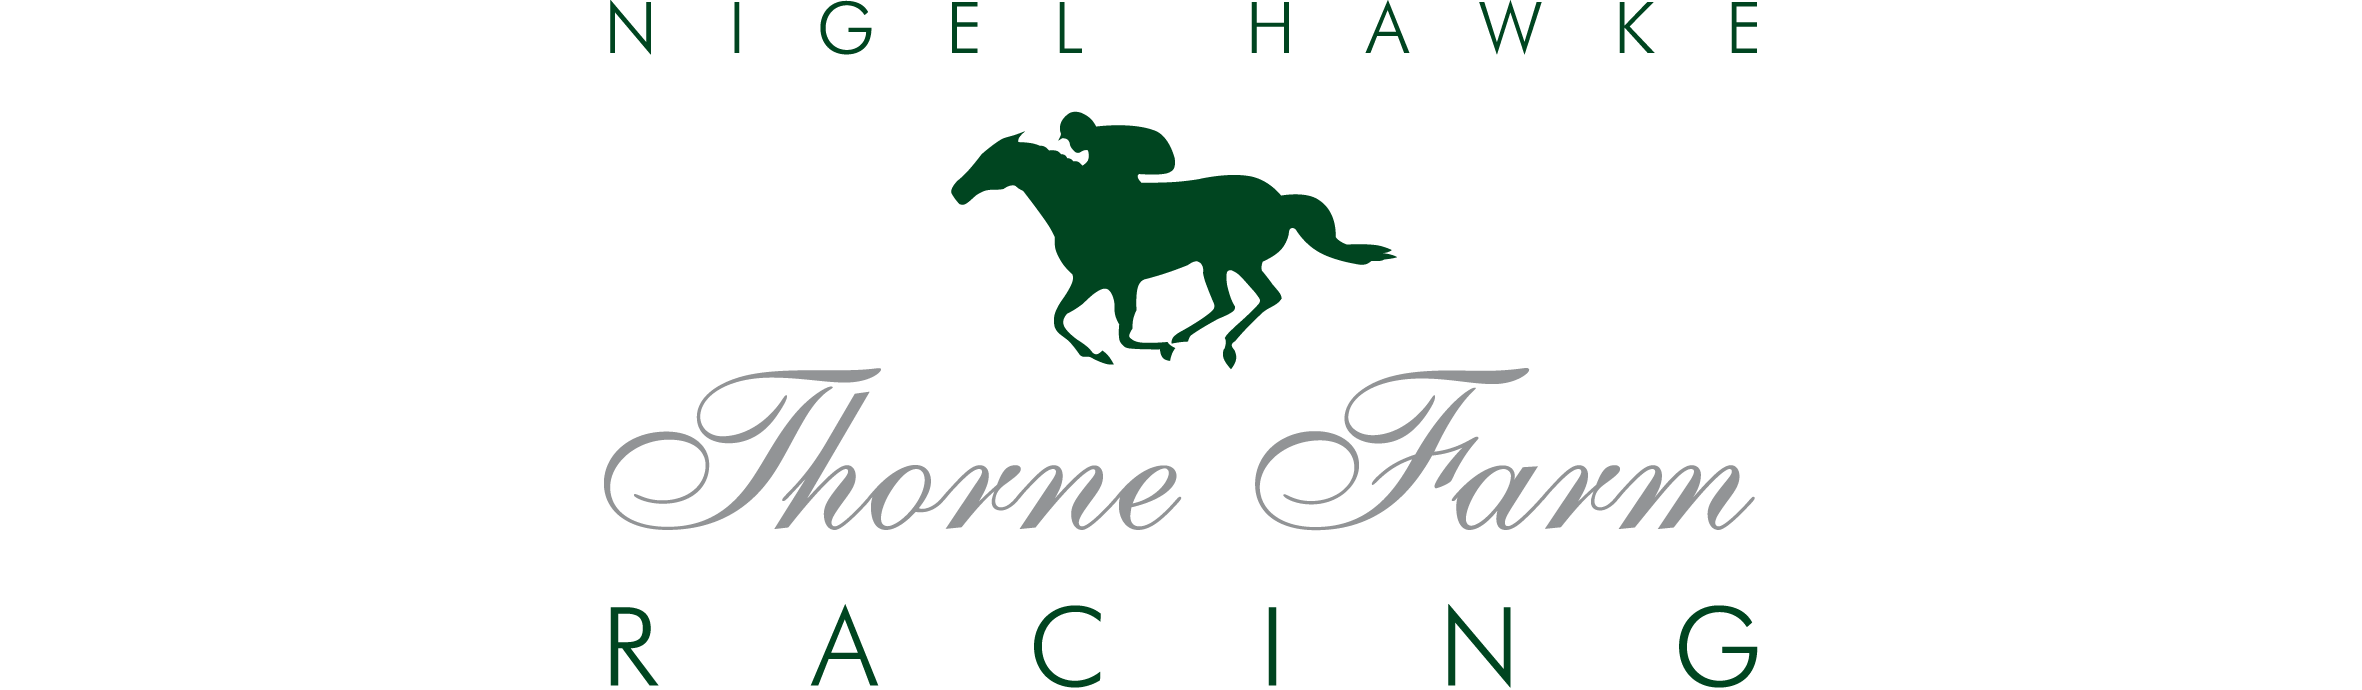 Nigel Hawke Thorne Farm Racing Logo